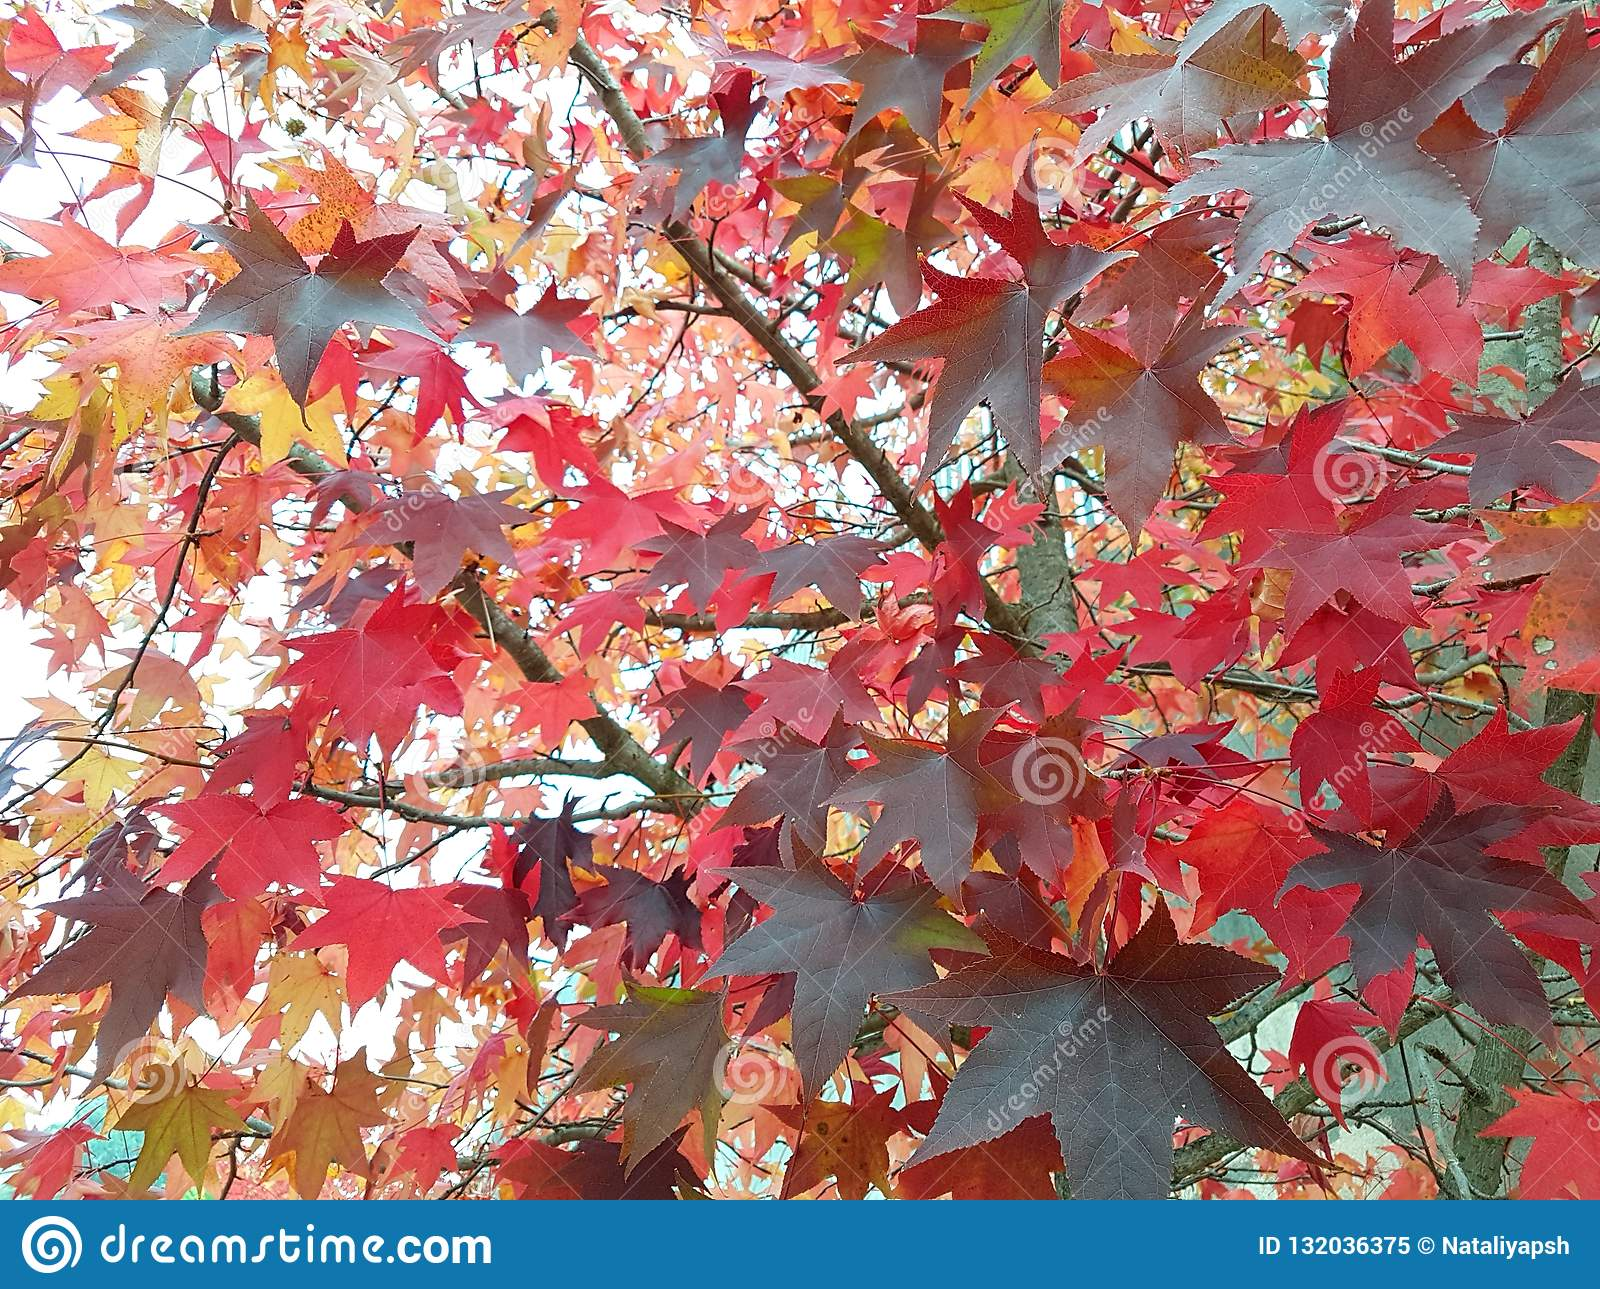 The Red maple leaves